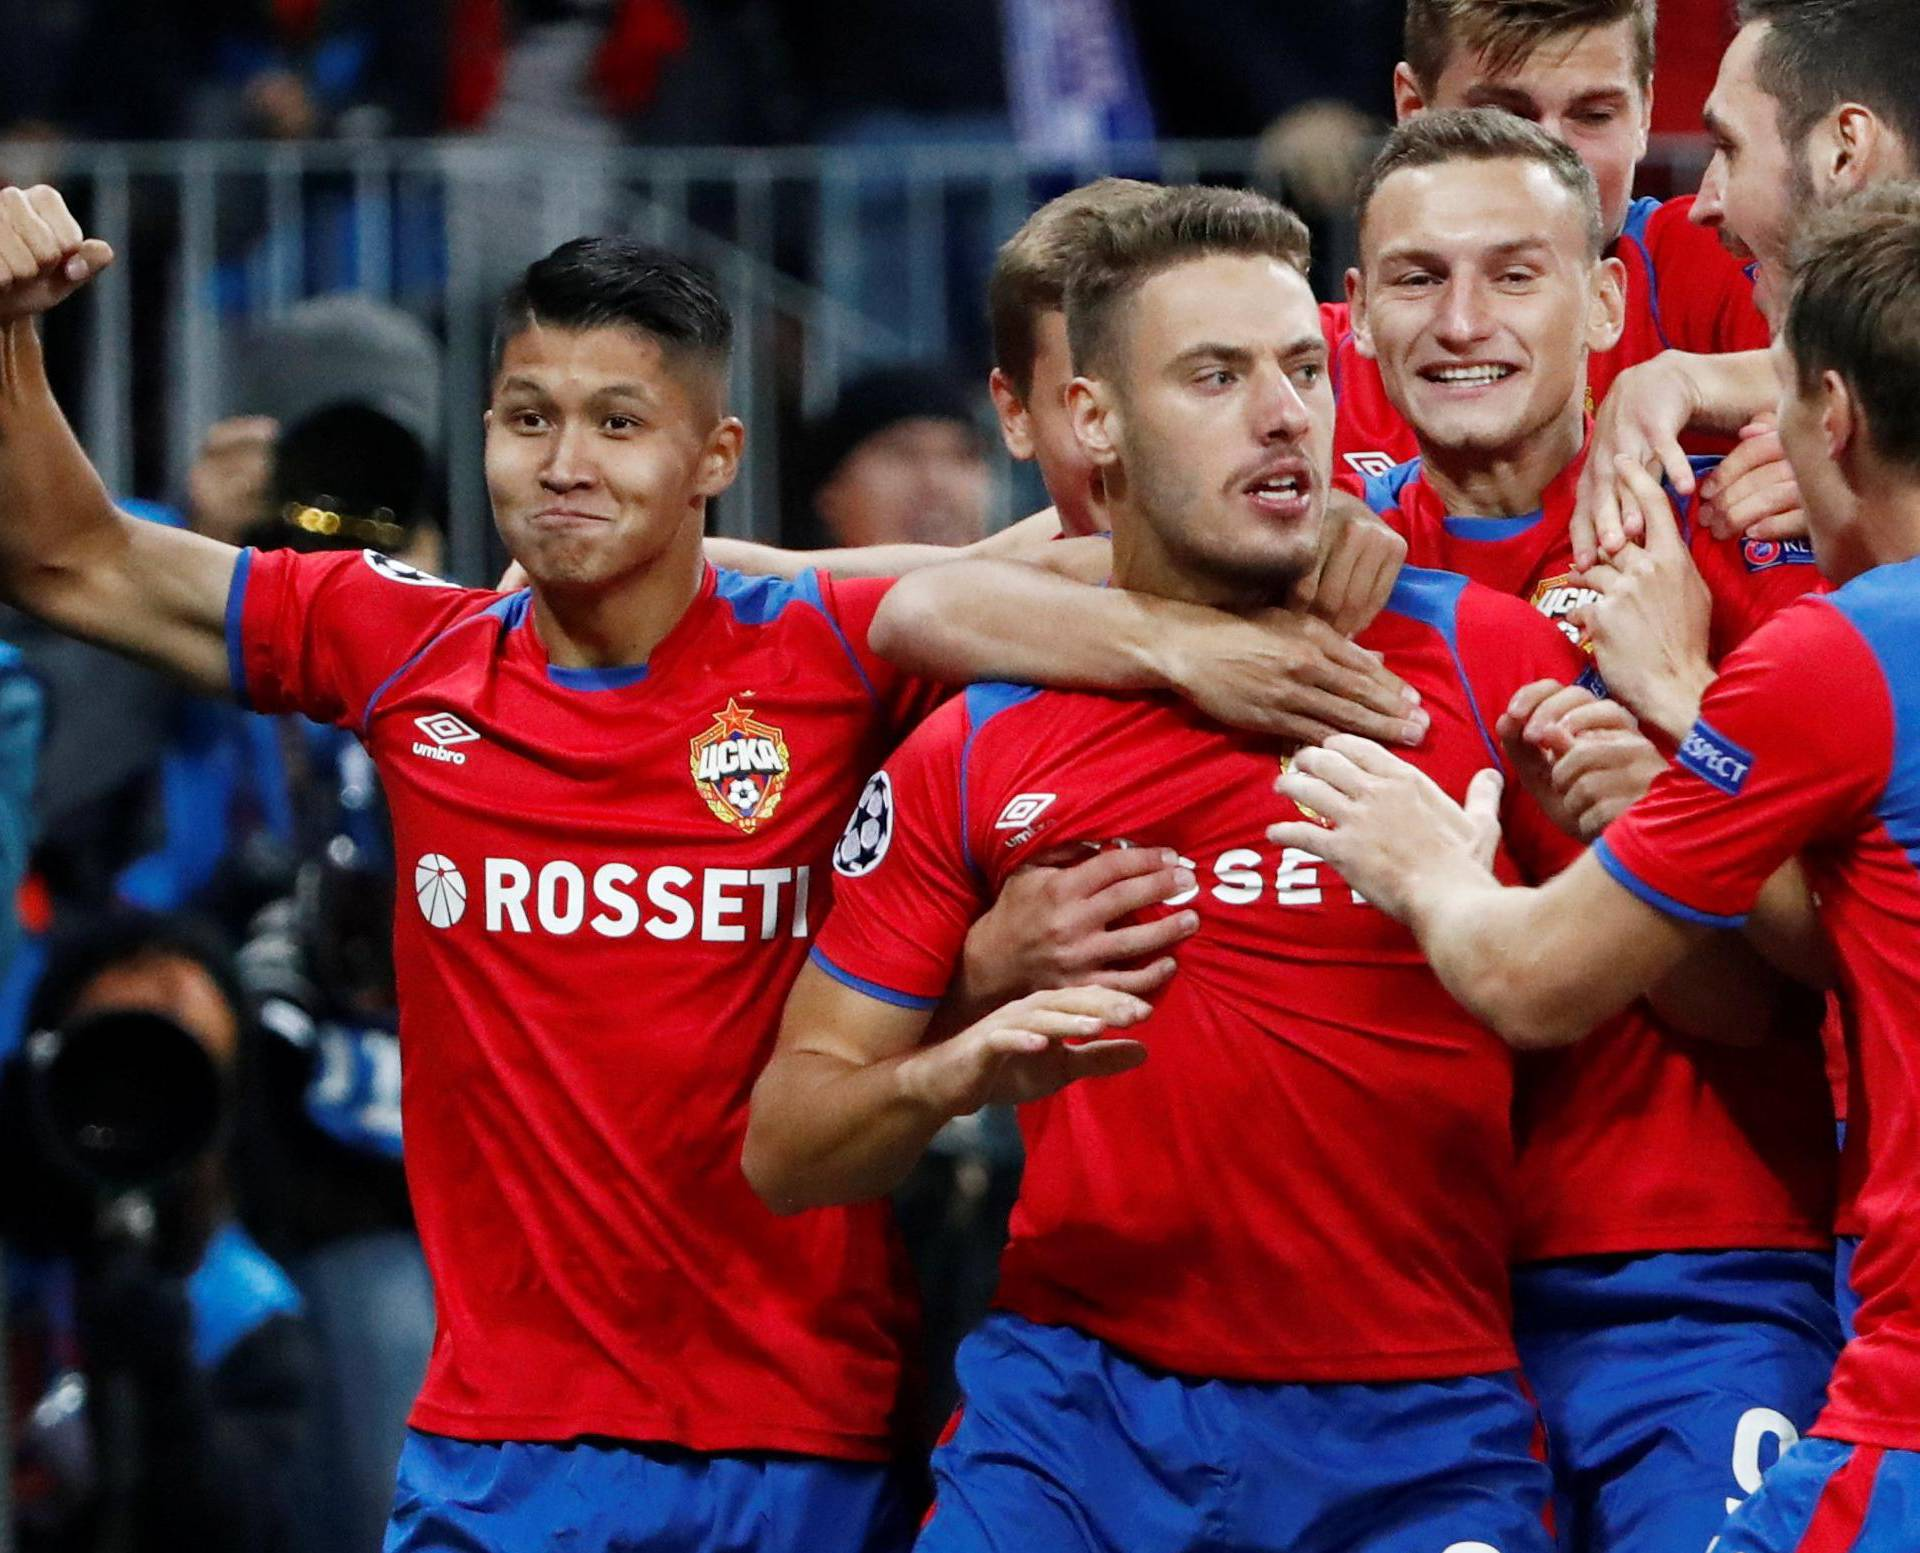 Champions League - Group Stage - Group G - CSKA Moscow v Real Madrid